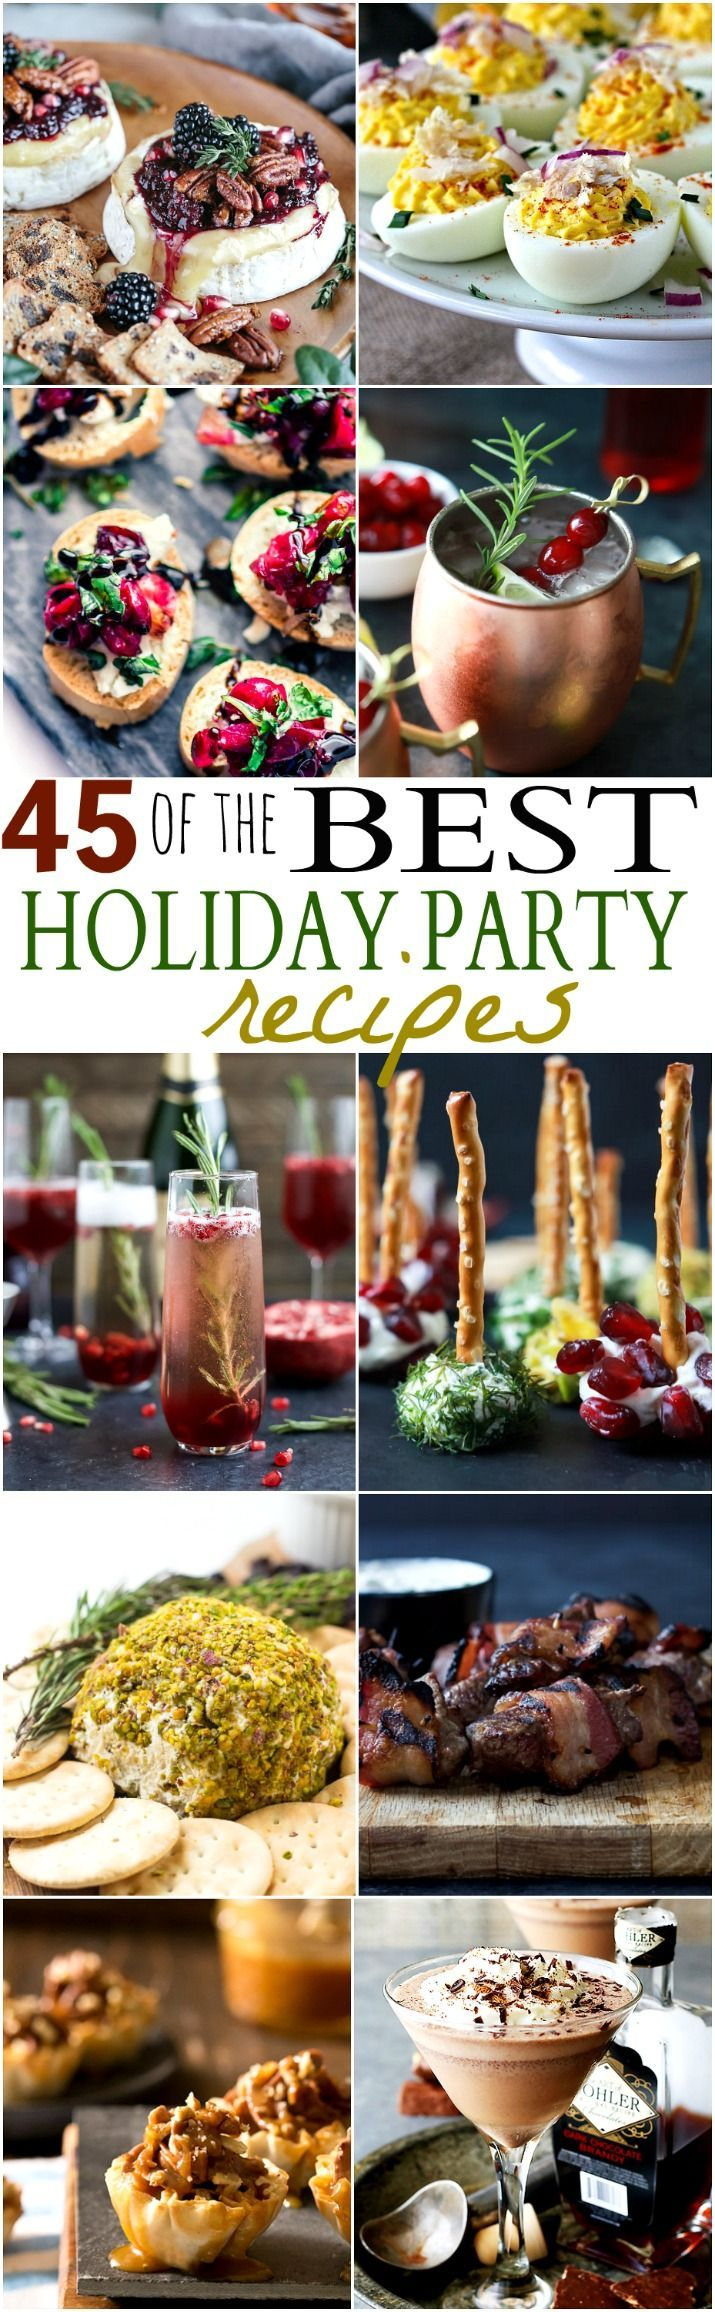 Party Recipes #appetizer #foodstyling #partyideas #Holidays